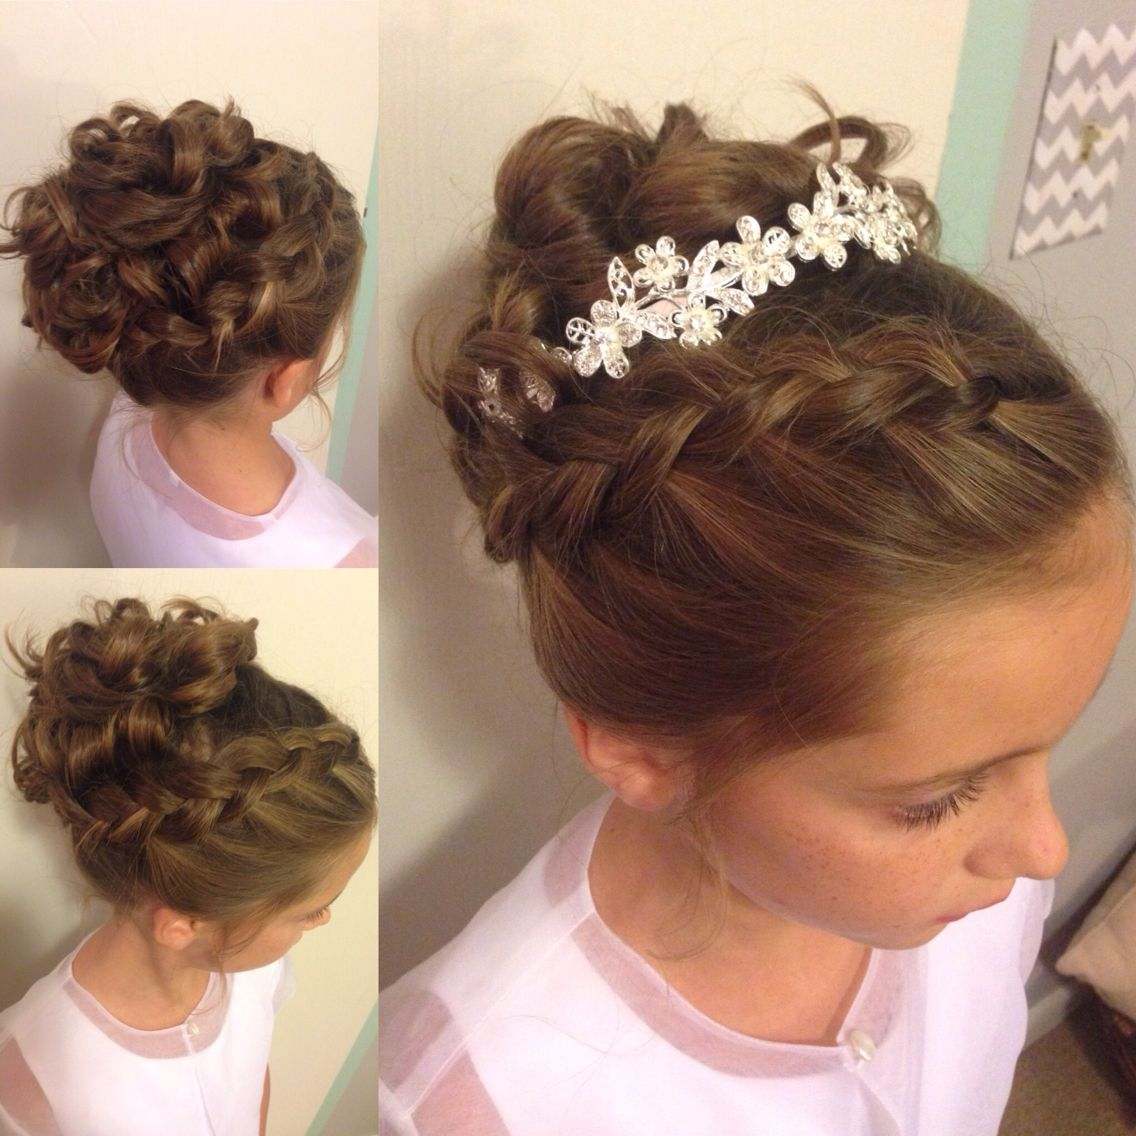 Little girl updo. Wedding hairstyle Instagram